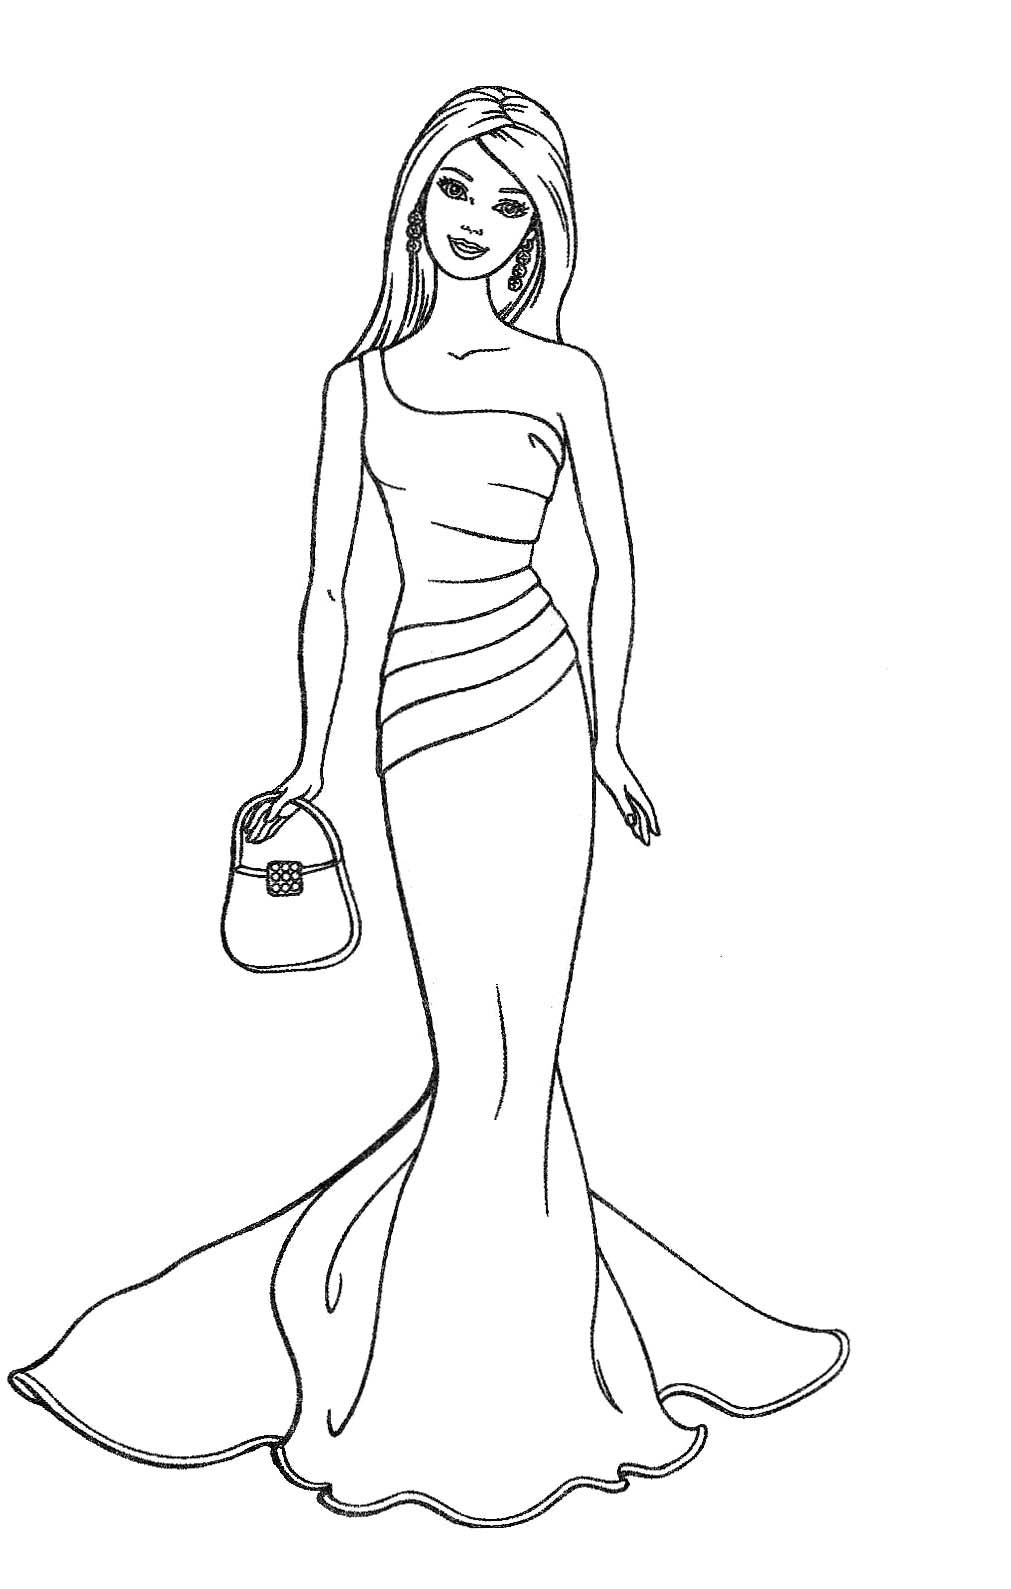 Barbie coloring pages printable to download for Barbie coloring pages for kids